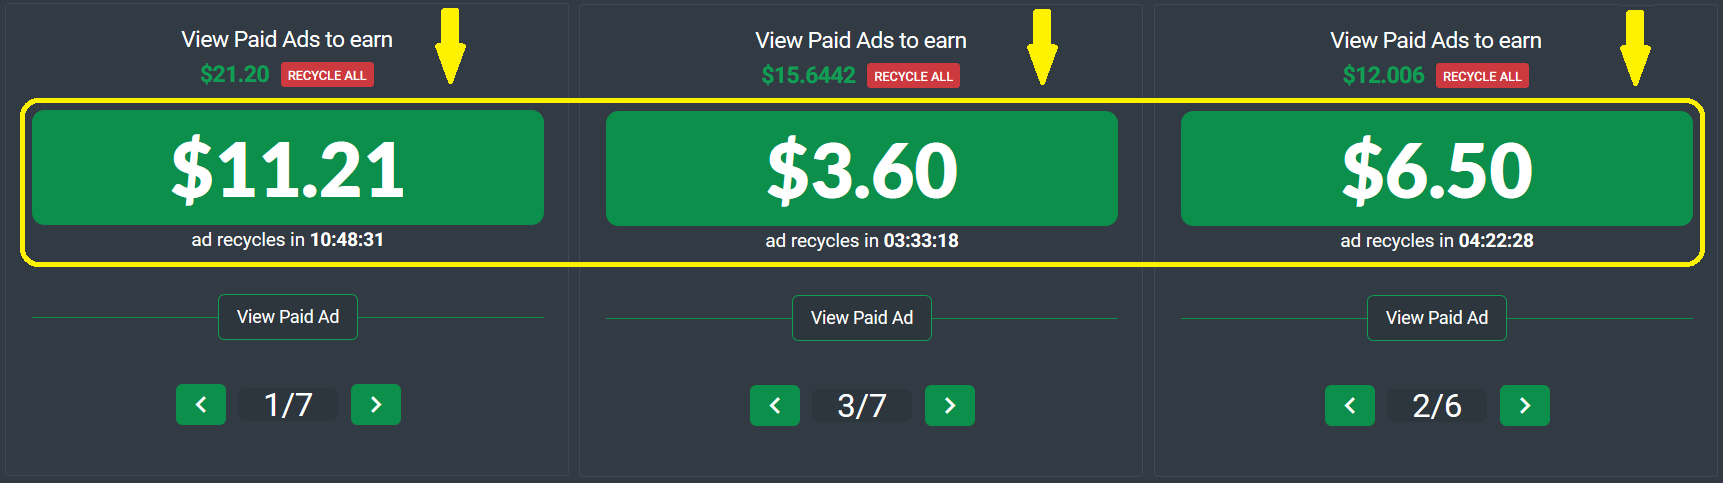 Big Paid Ads on PtcShare